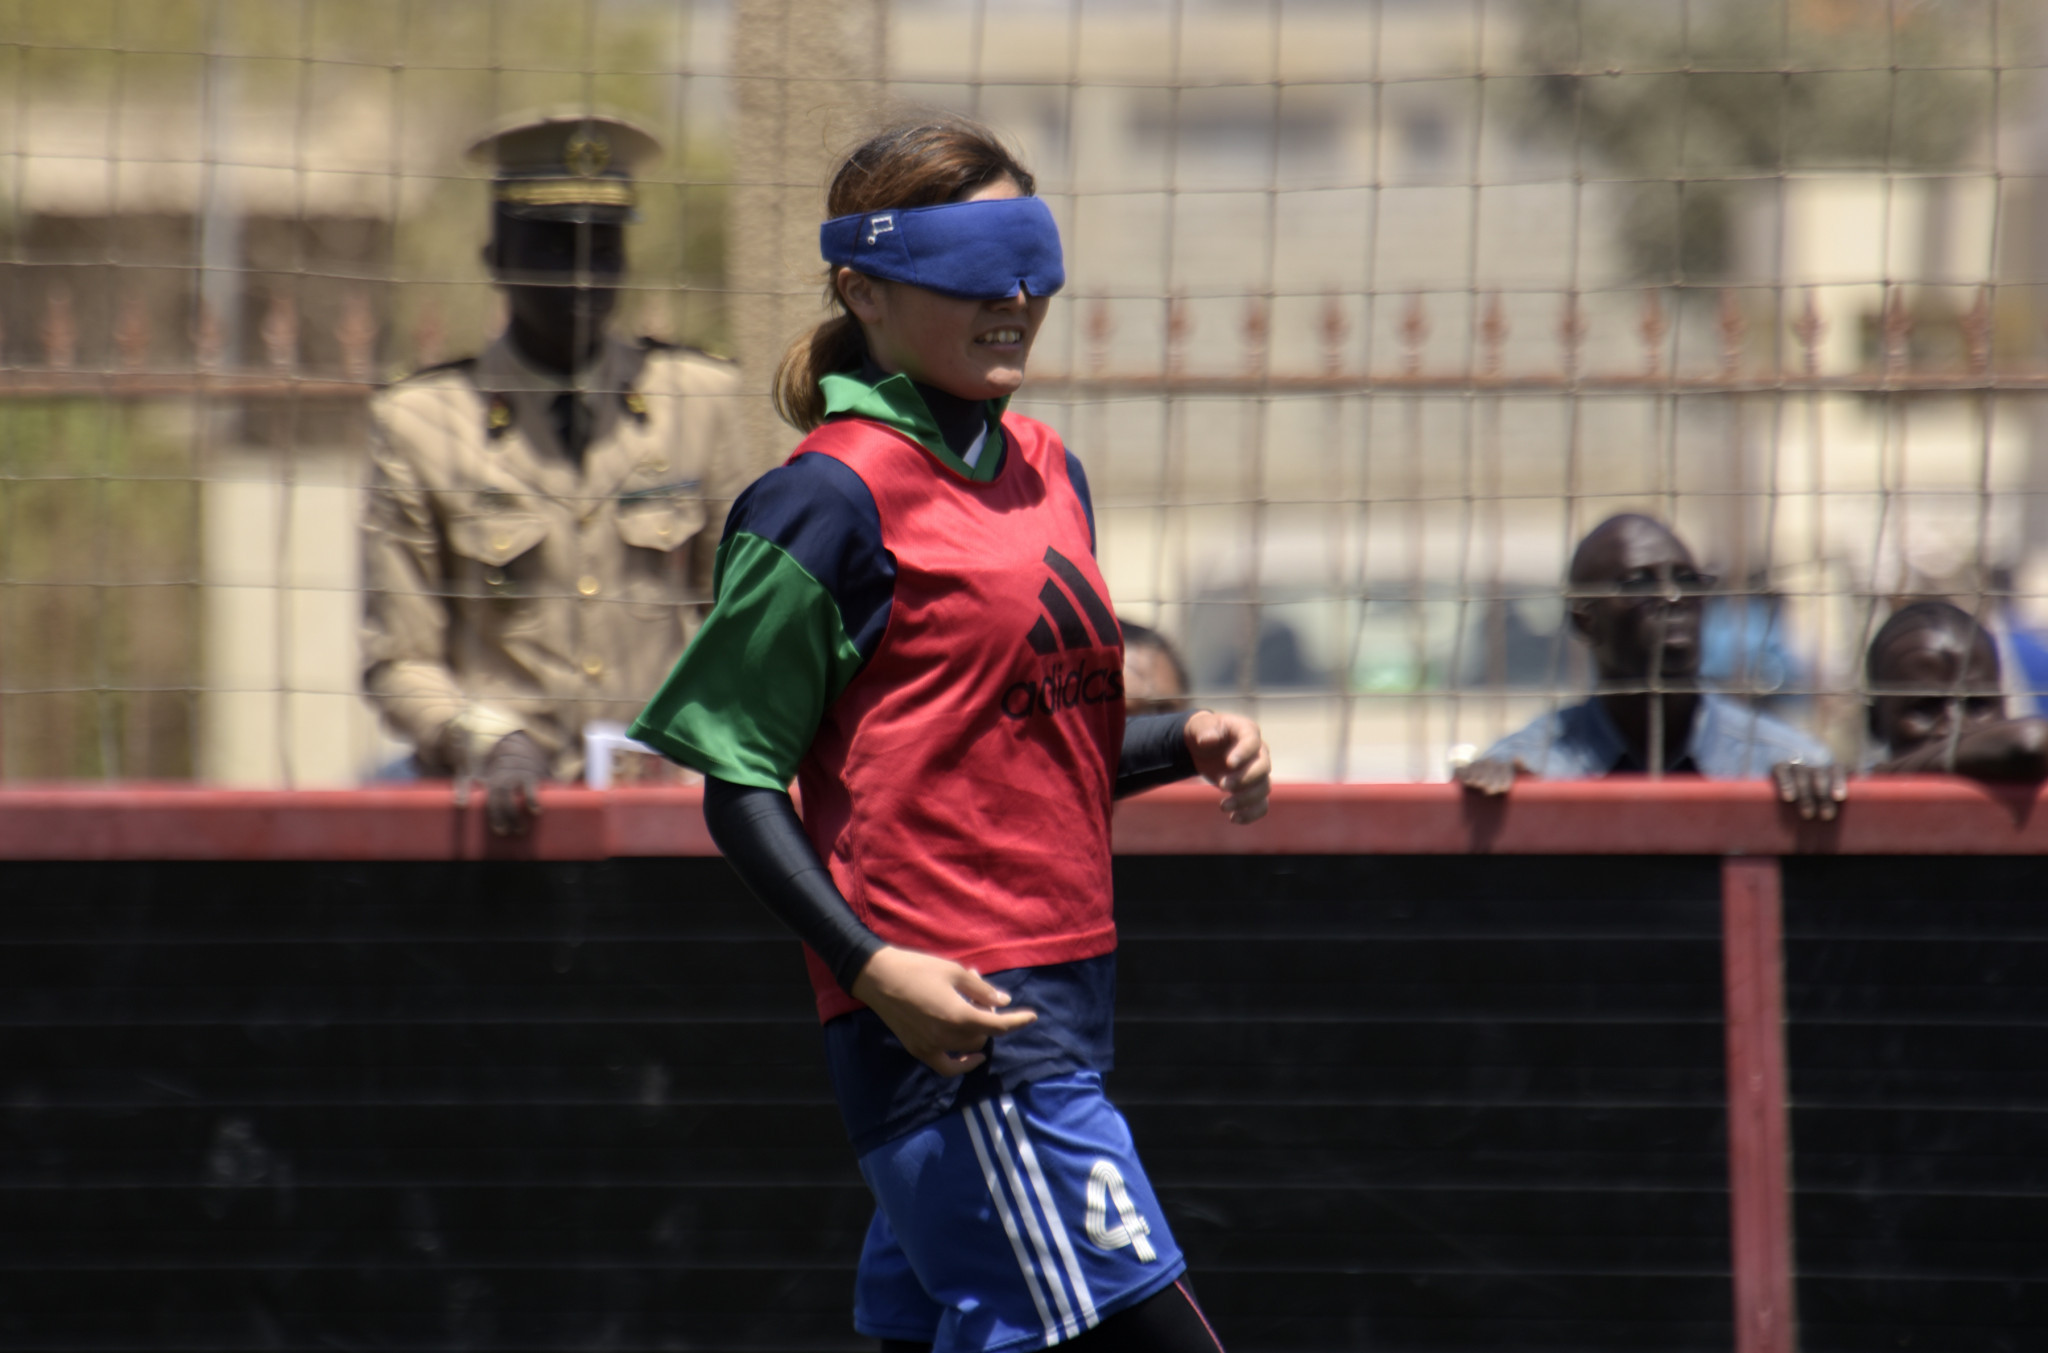 The International Blind Sports Federation is inviting female blind football players to an international training camp in Tokyo ©IBSA